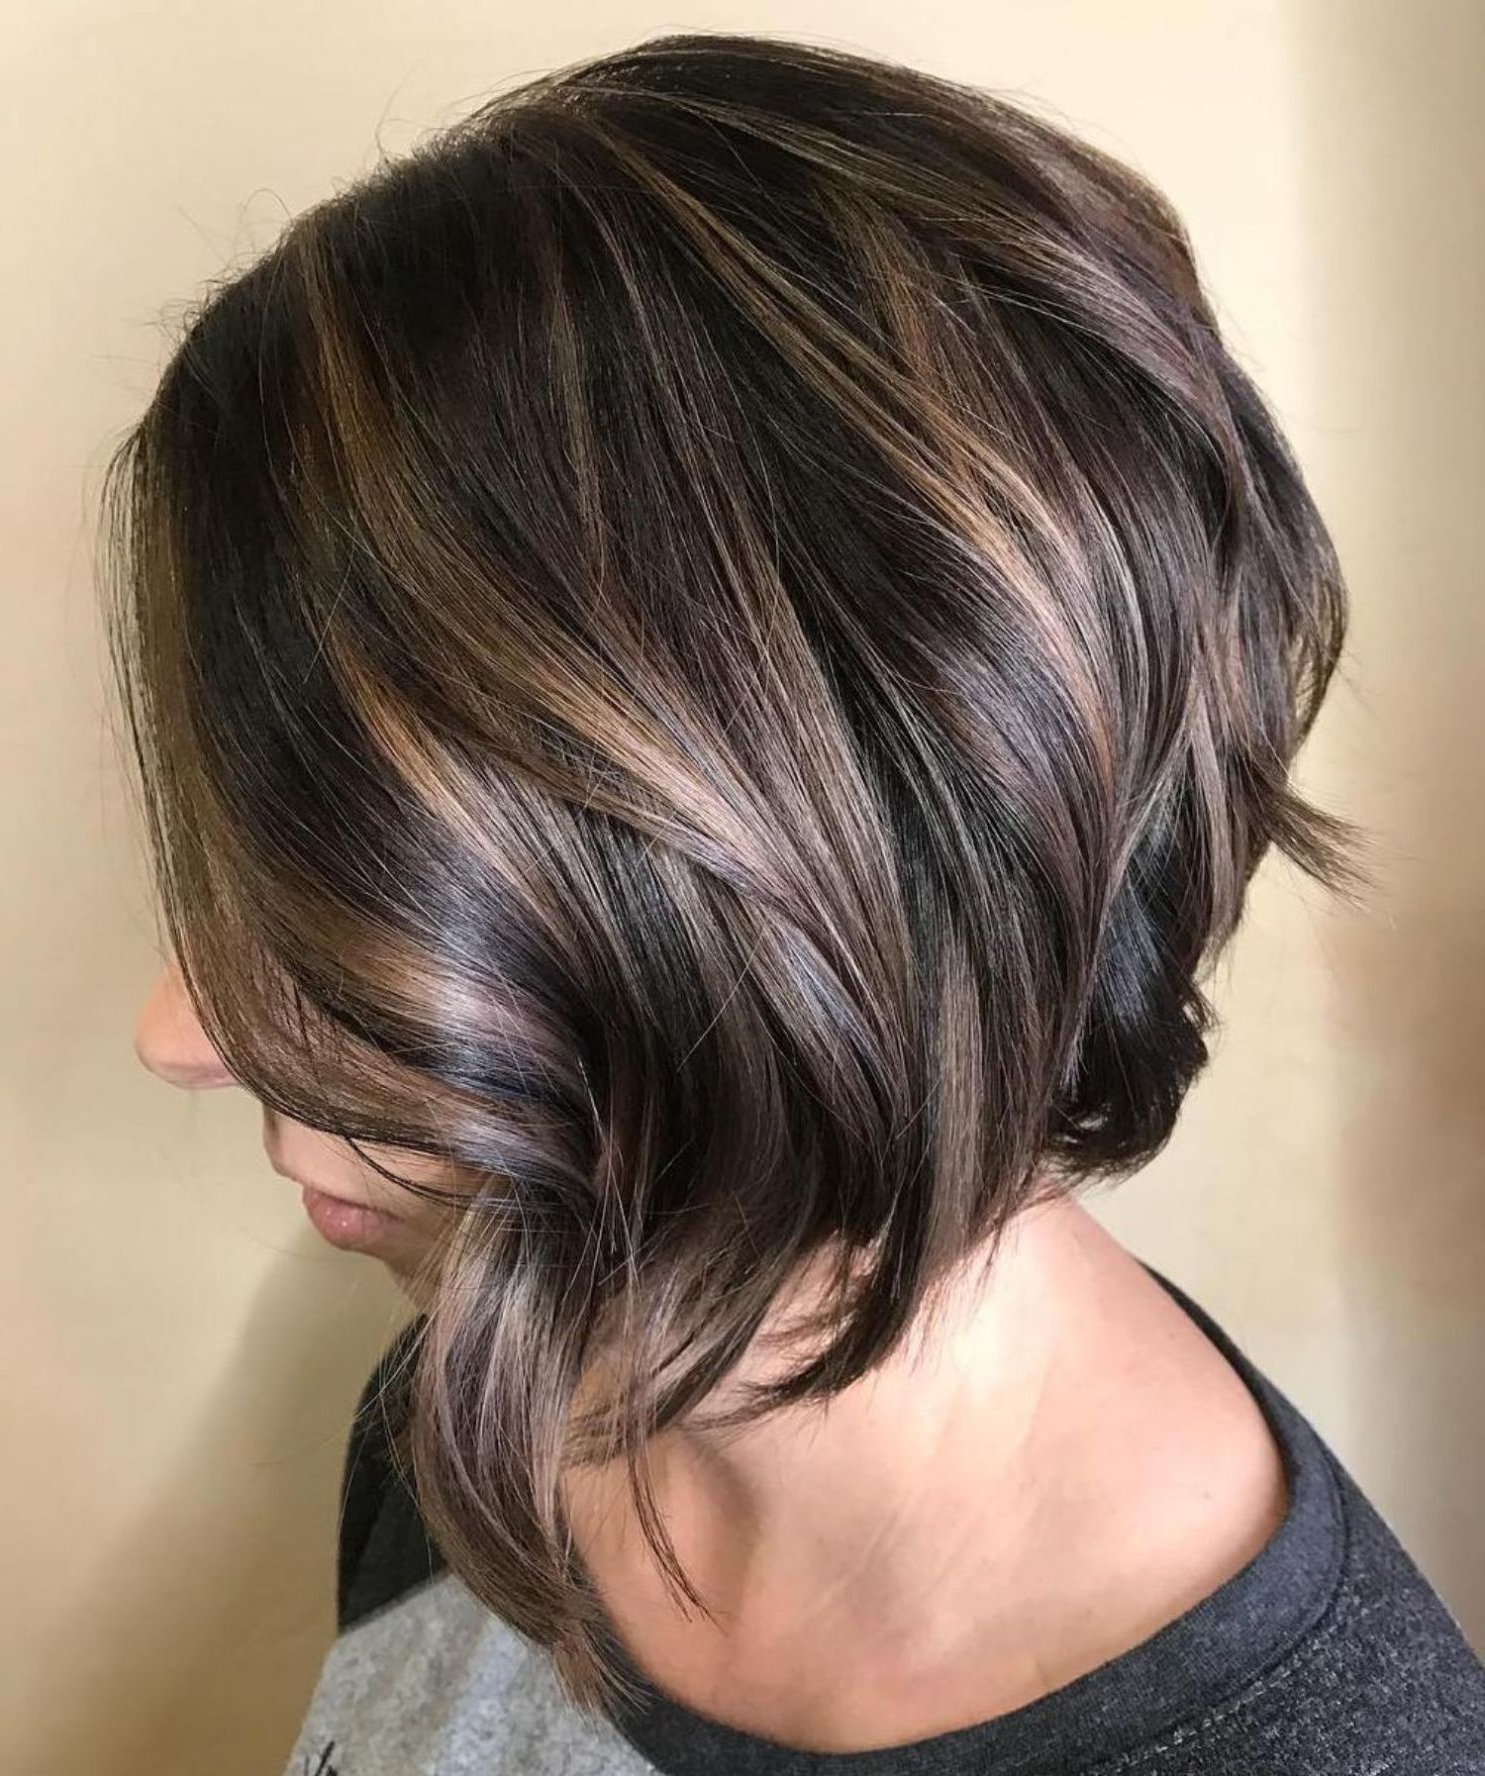 70 Best A Line Bob Hairstyles Screaming With Class And Style In 2019 Pertaining To Well Known Cute A Line Bob Hairstyles With Volume Towards The Ends (View 6 of 20)